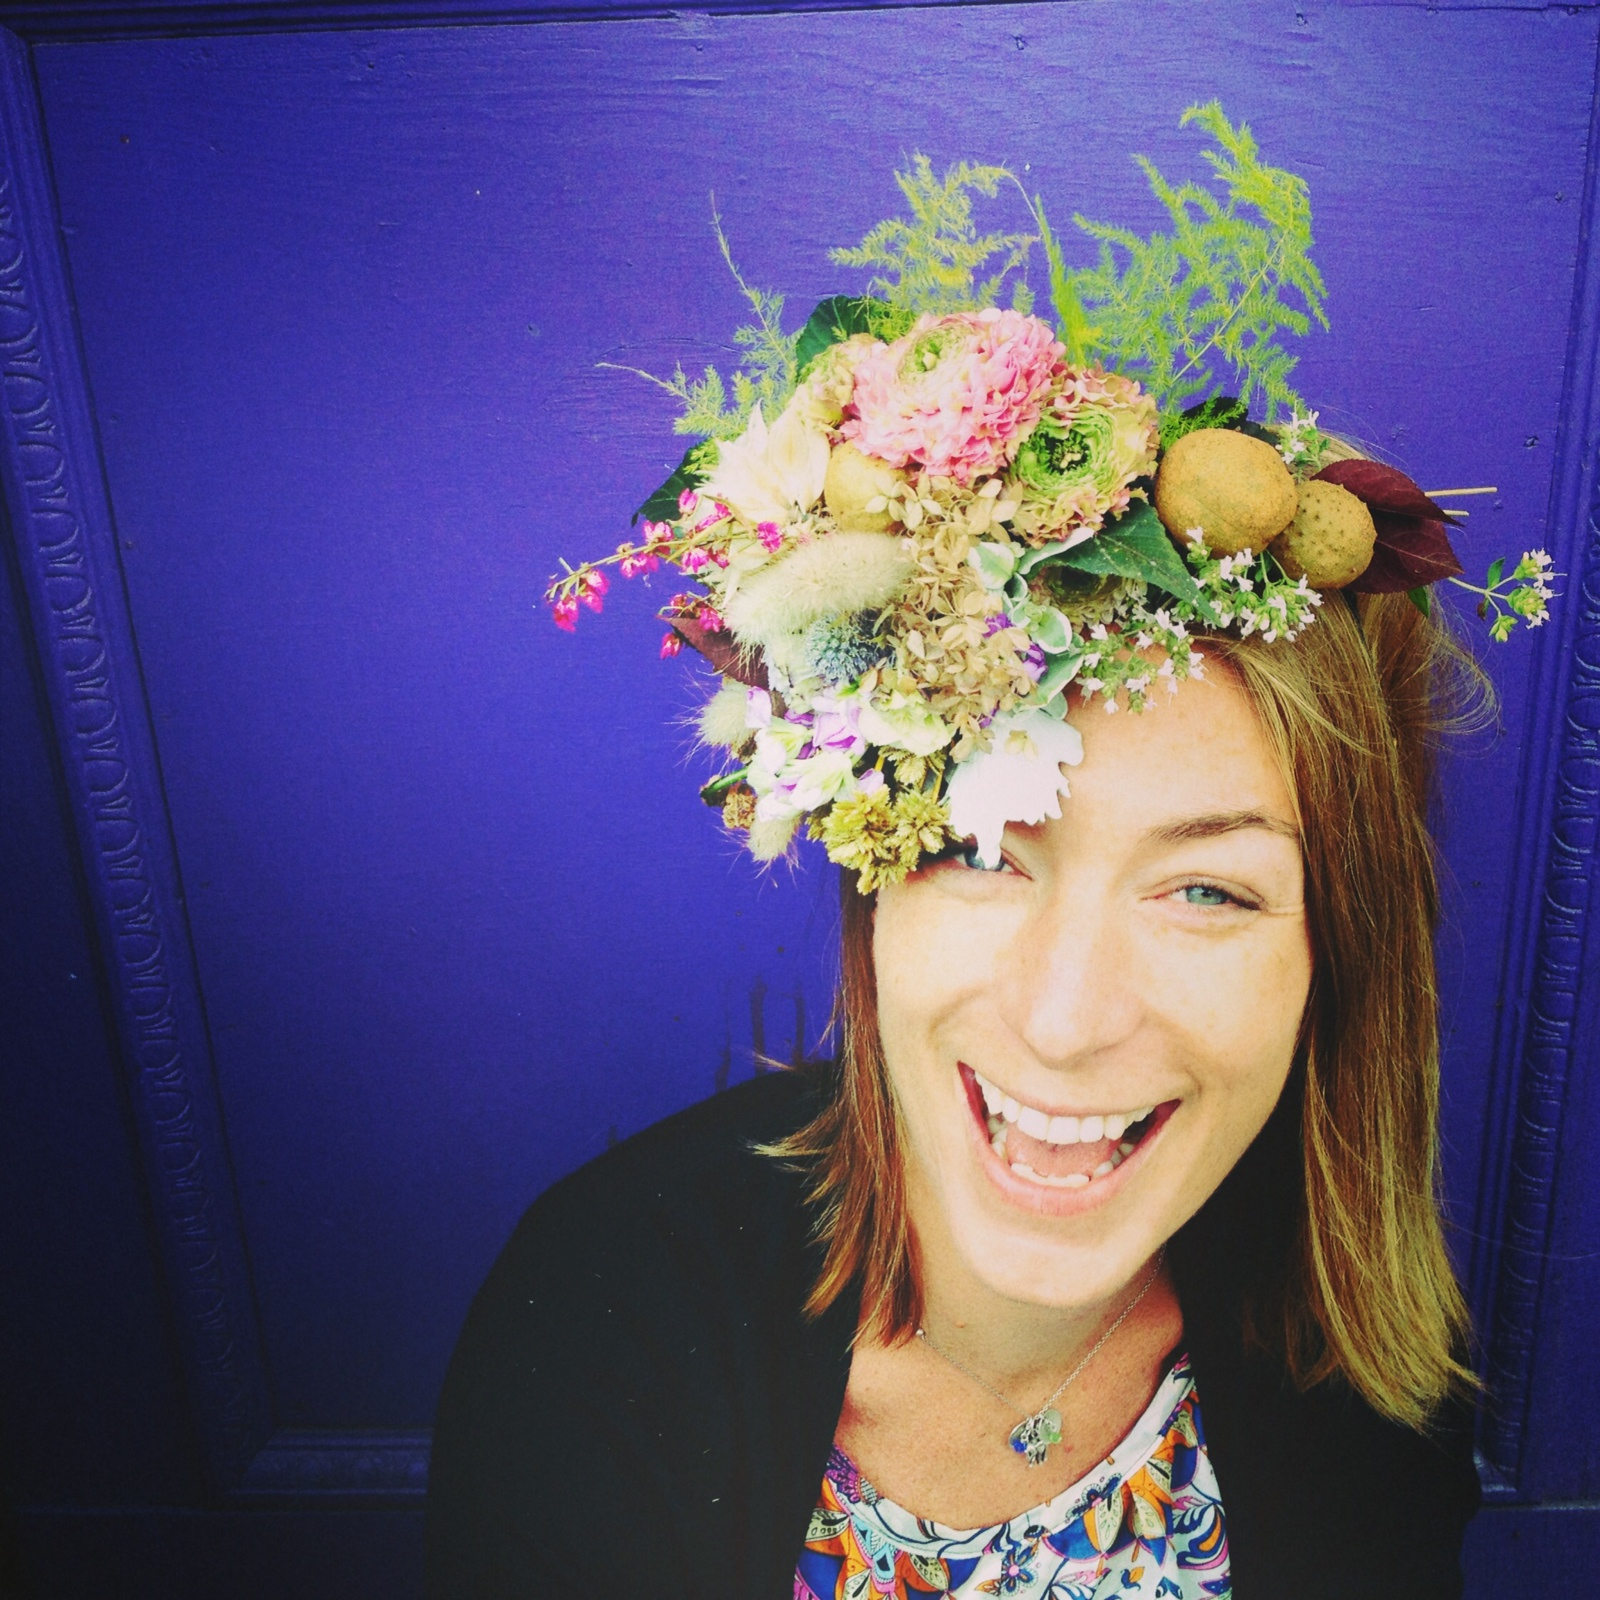 EMILIE LAMBERT   is Valley Flower Company's newest addition to the design team. Our resident kind soul is always quick to dance to a catchy beat and is often someone who will go above and beyond to make someone's day.